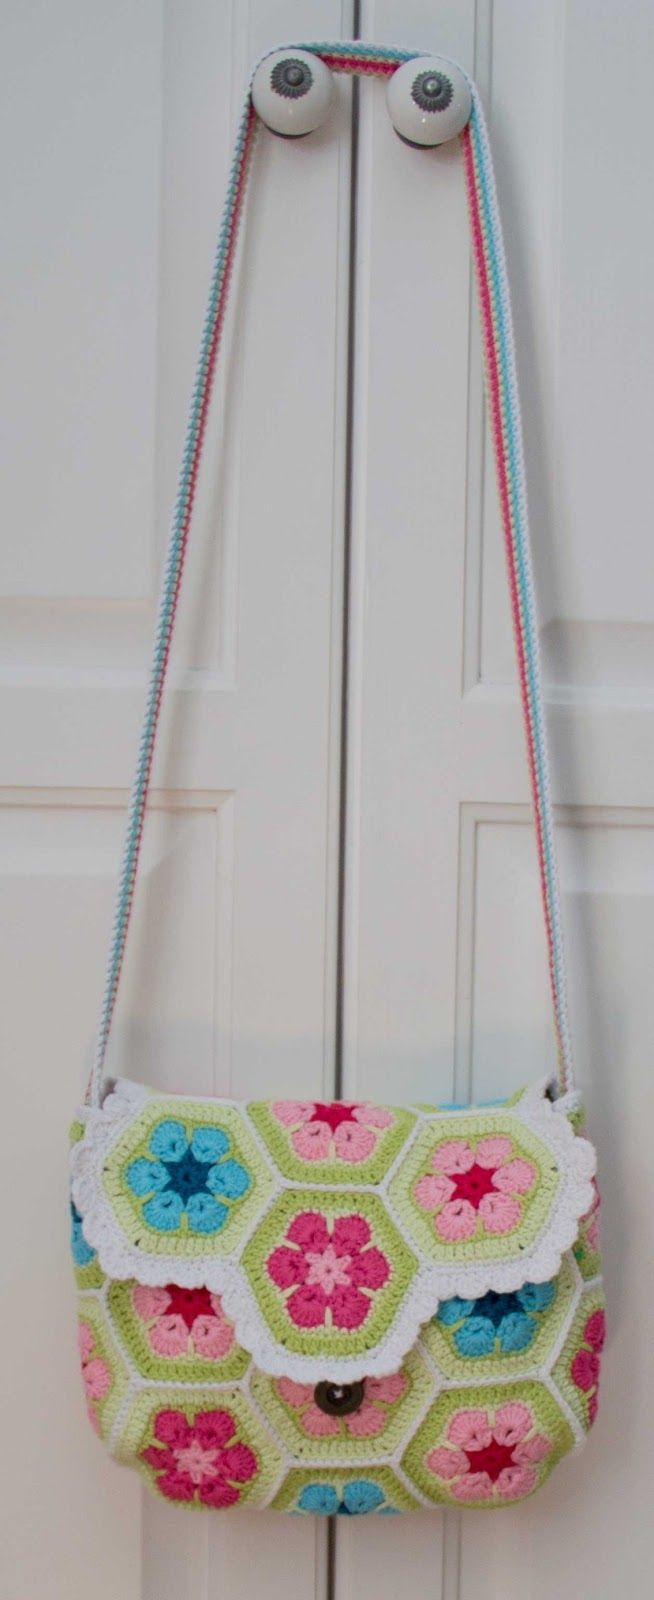 croched bag purse african flower free patern | Crochet - African ...